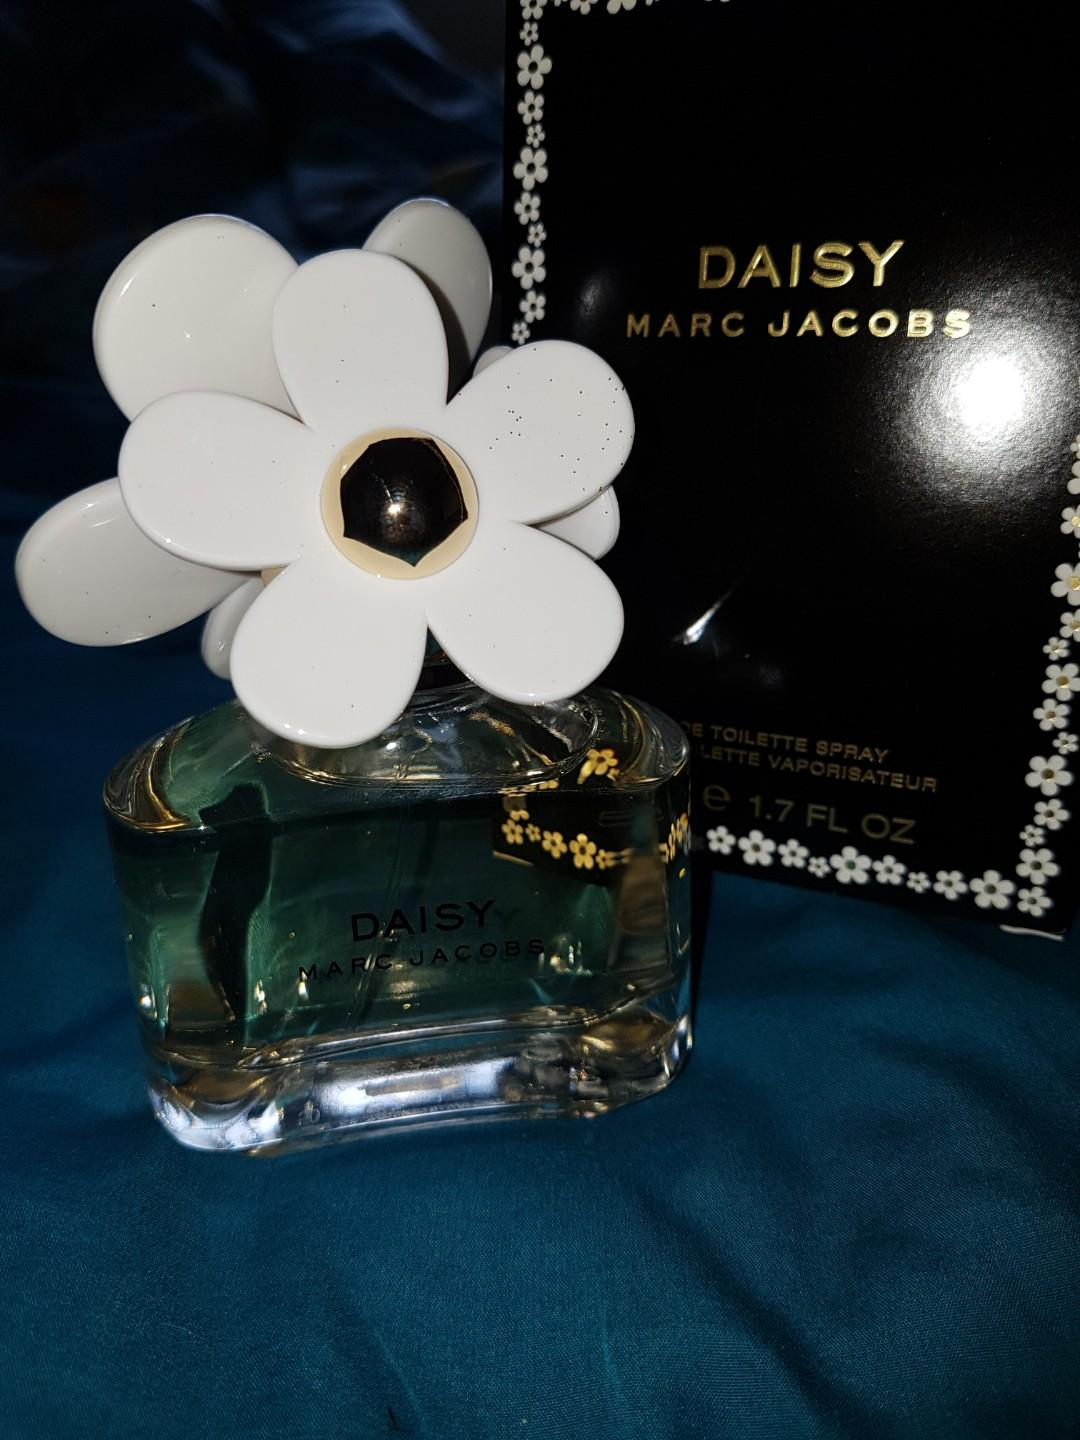 Marc Jacobs Daisy 50ml PICK UP ONLY!!!